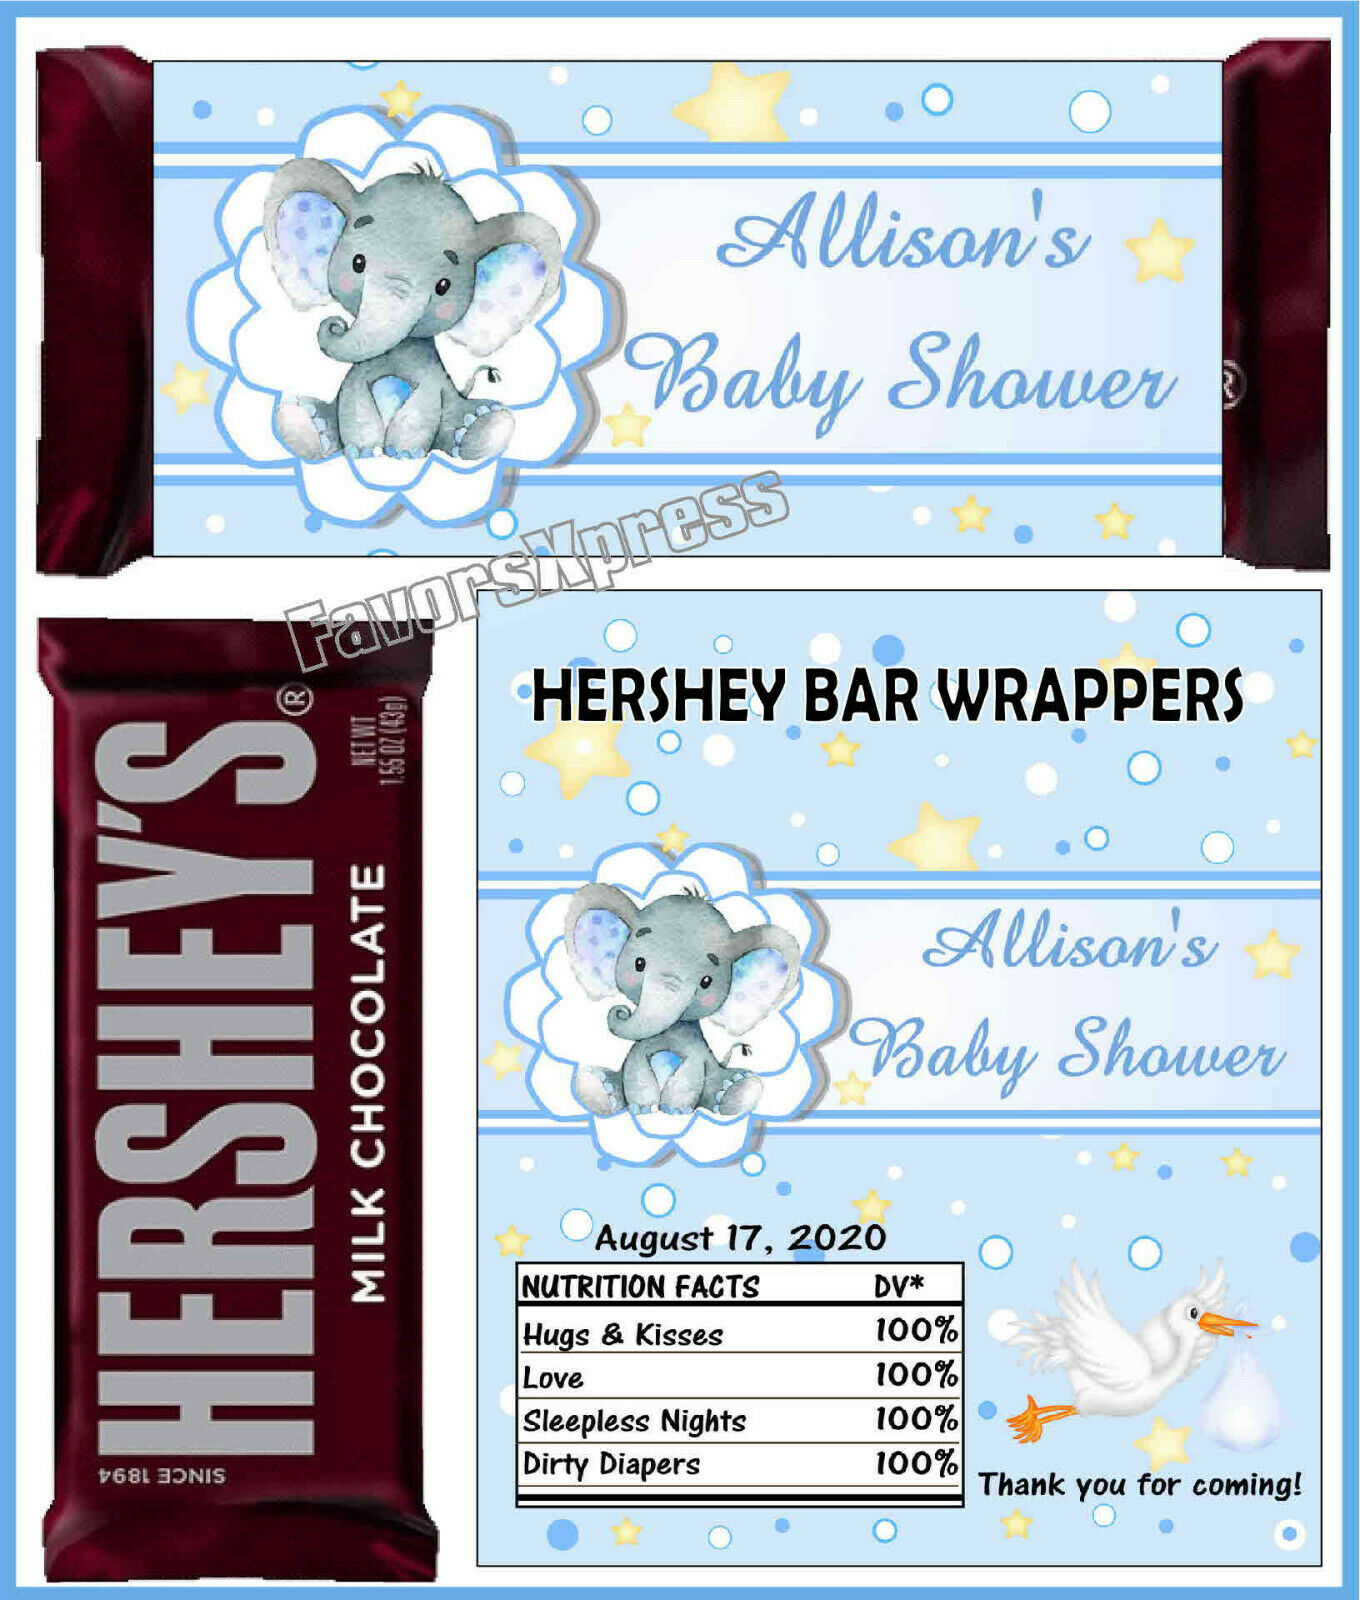 Cherry Blossom Bridal Shower Candy Bar Wrappers for Chocolate Bars Favors Sweet 16 Wedding Chocolate Not Included Set of 12 40th-50th-60th Birthday for Bridal Shower Baby Shower